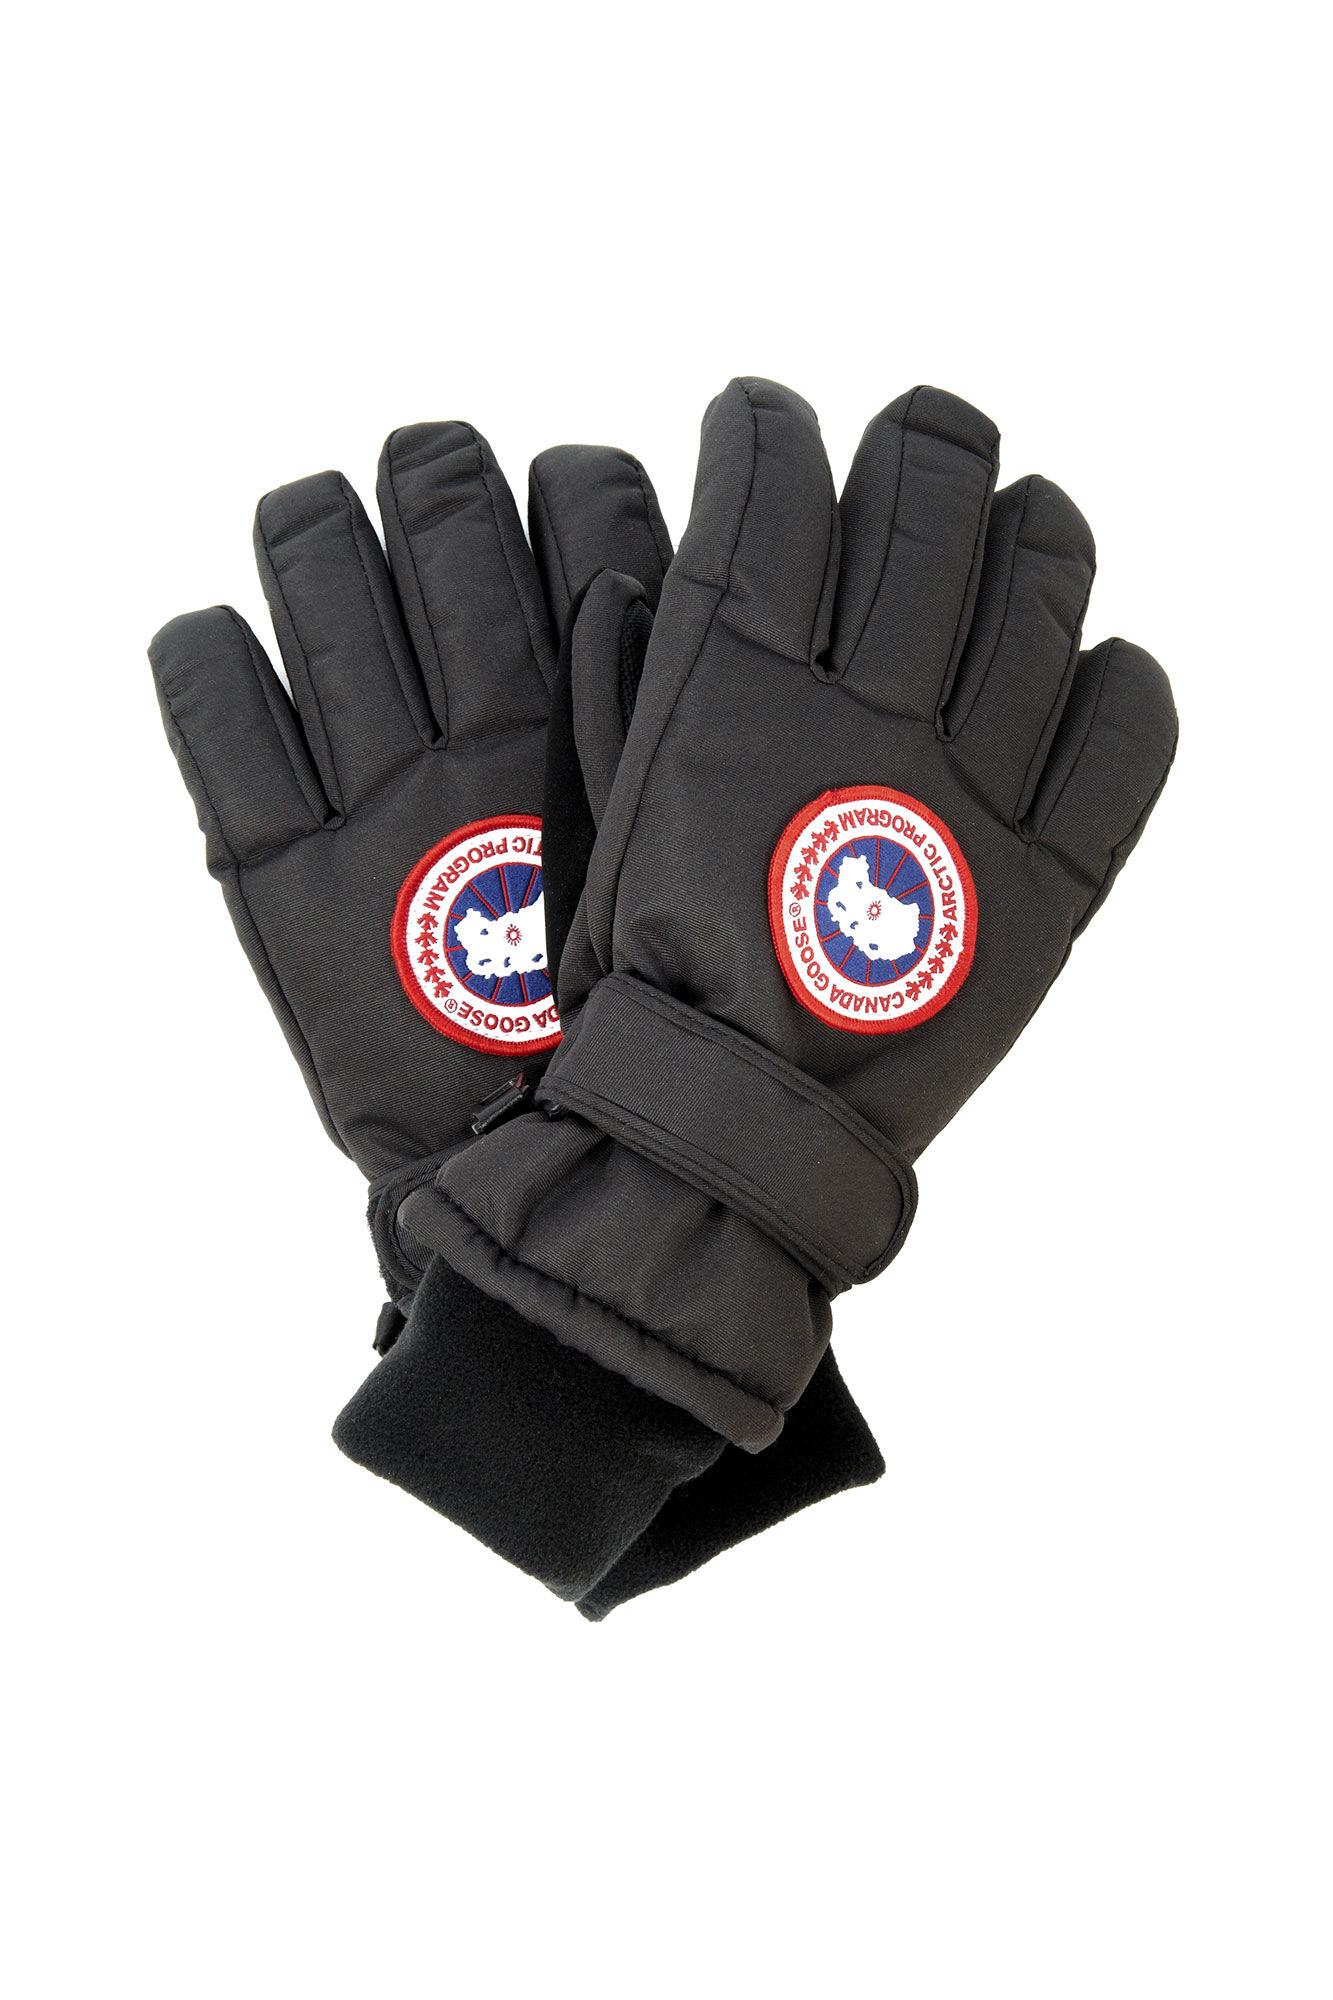 Canada Goose Womens Gloves Reviews